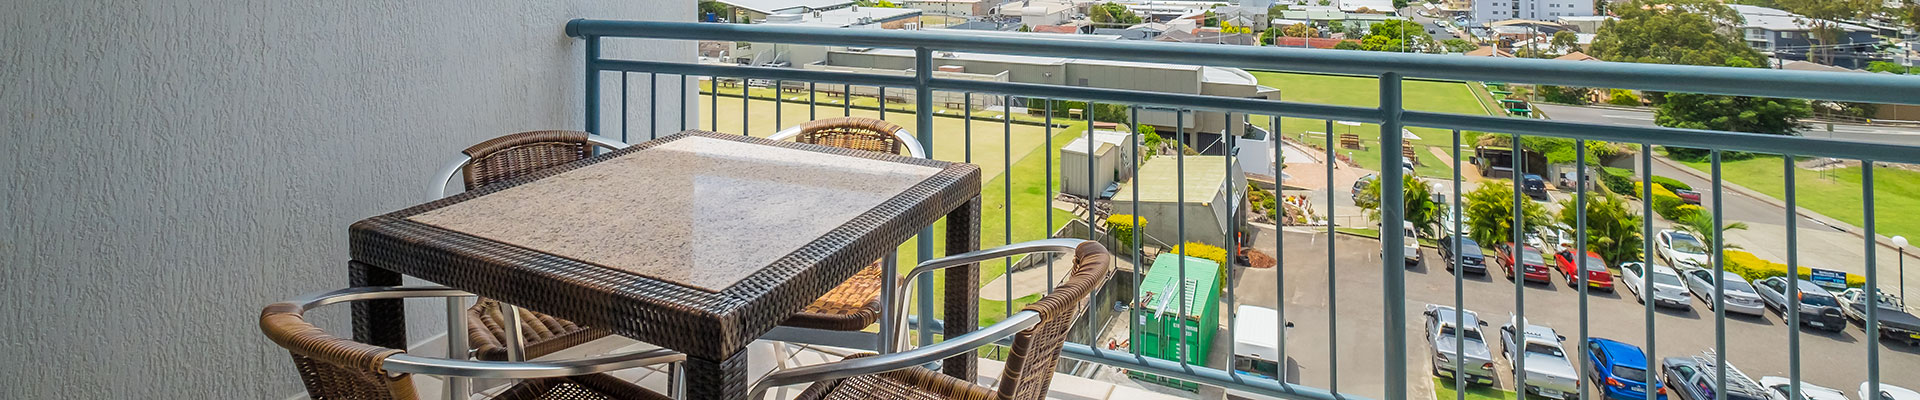 Two Bedroom Penthouse Apartments 5